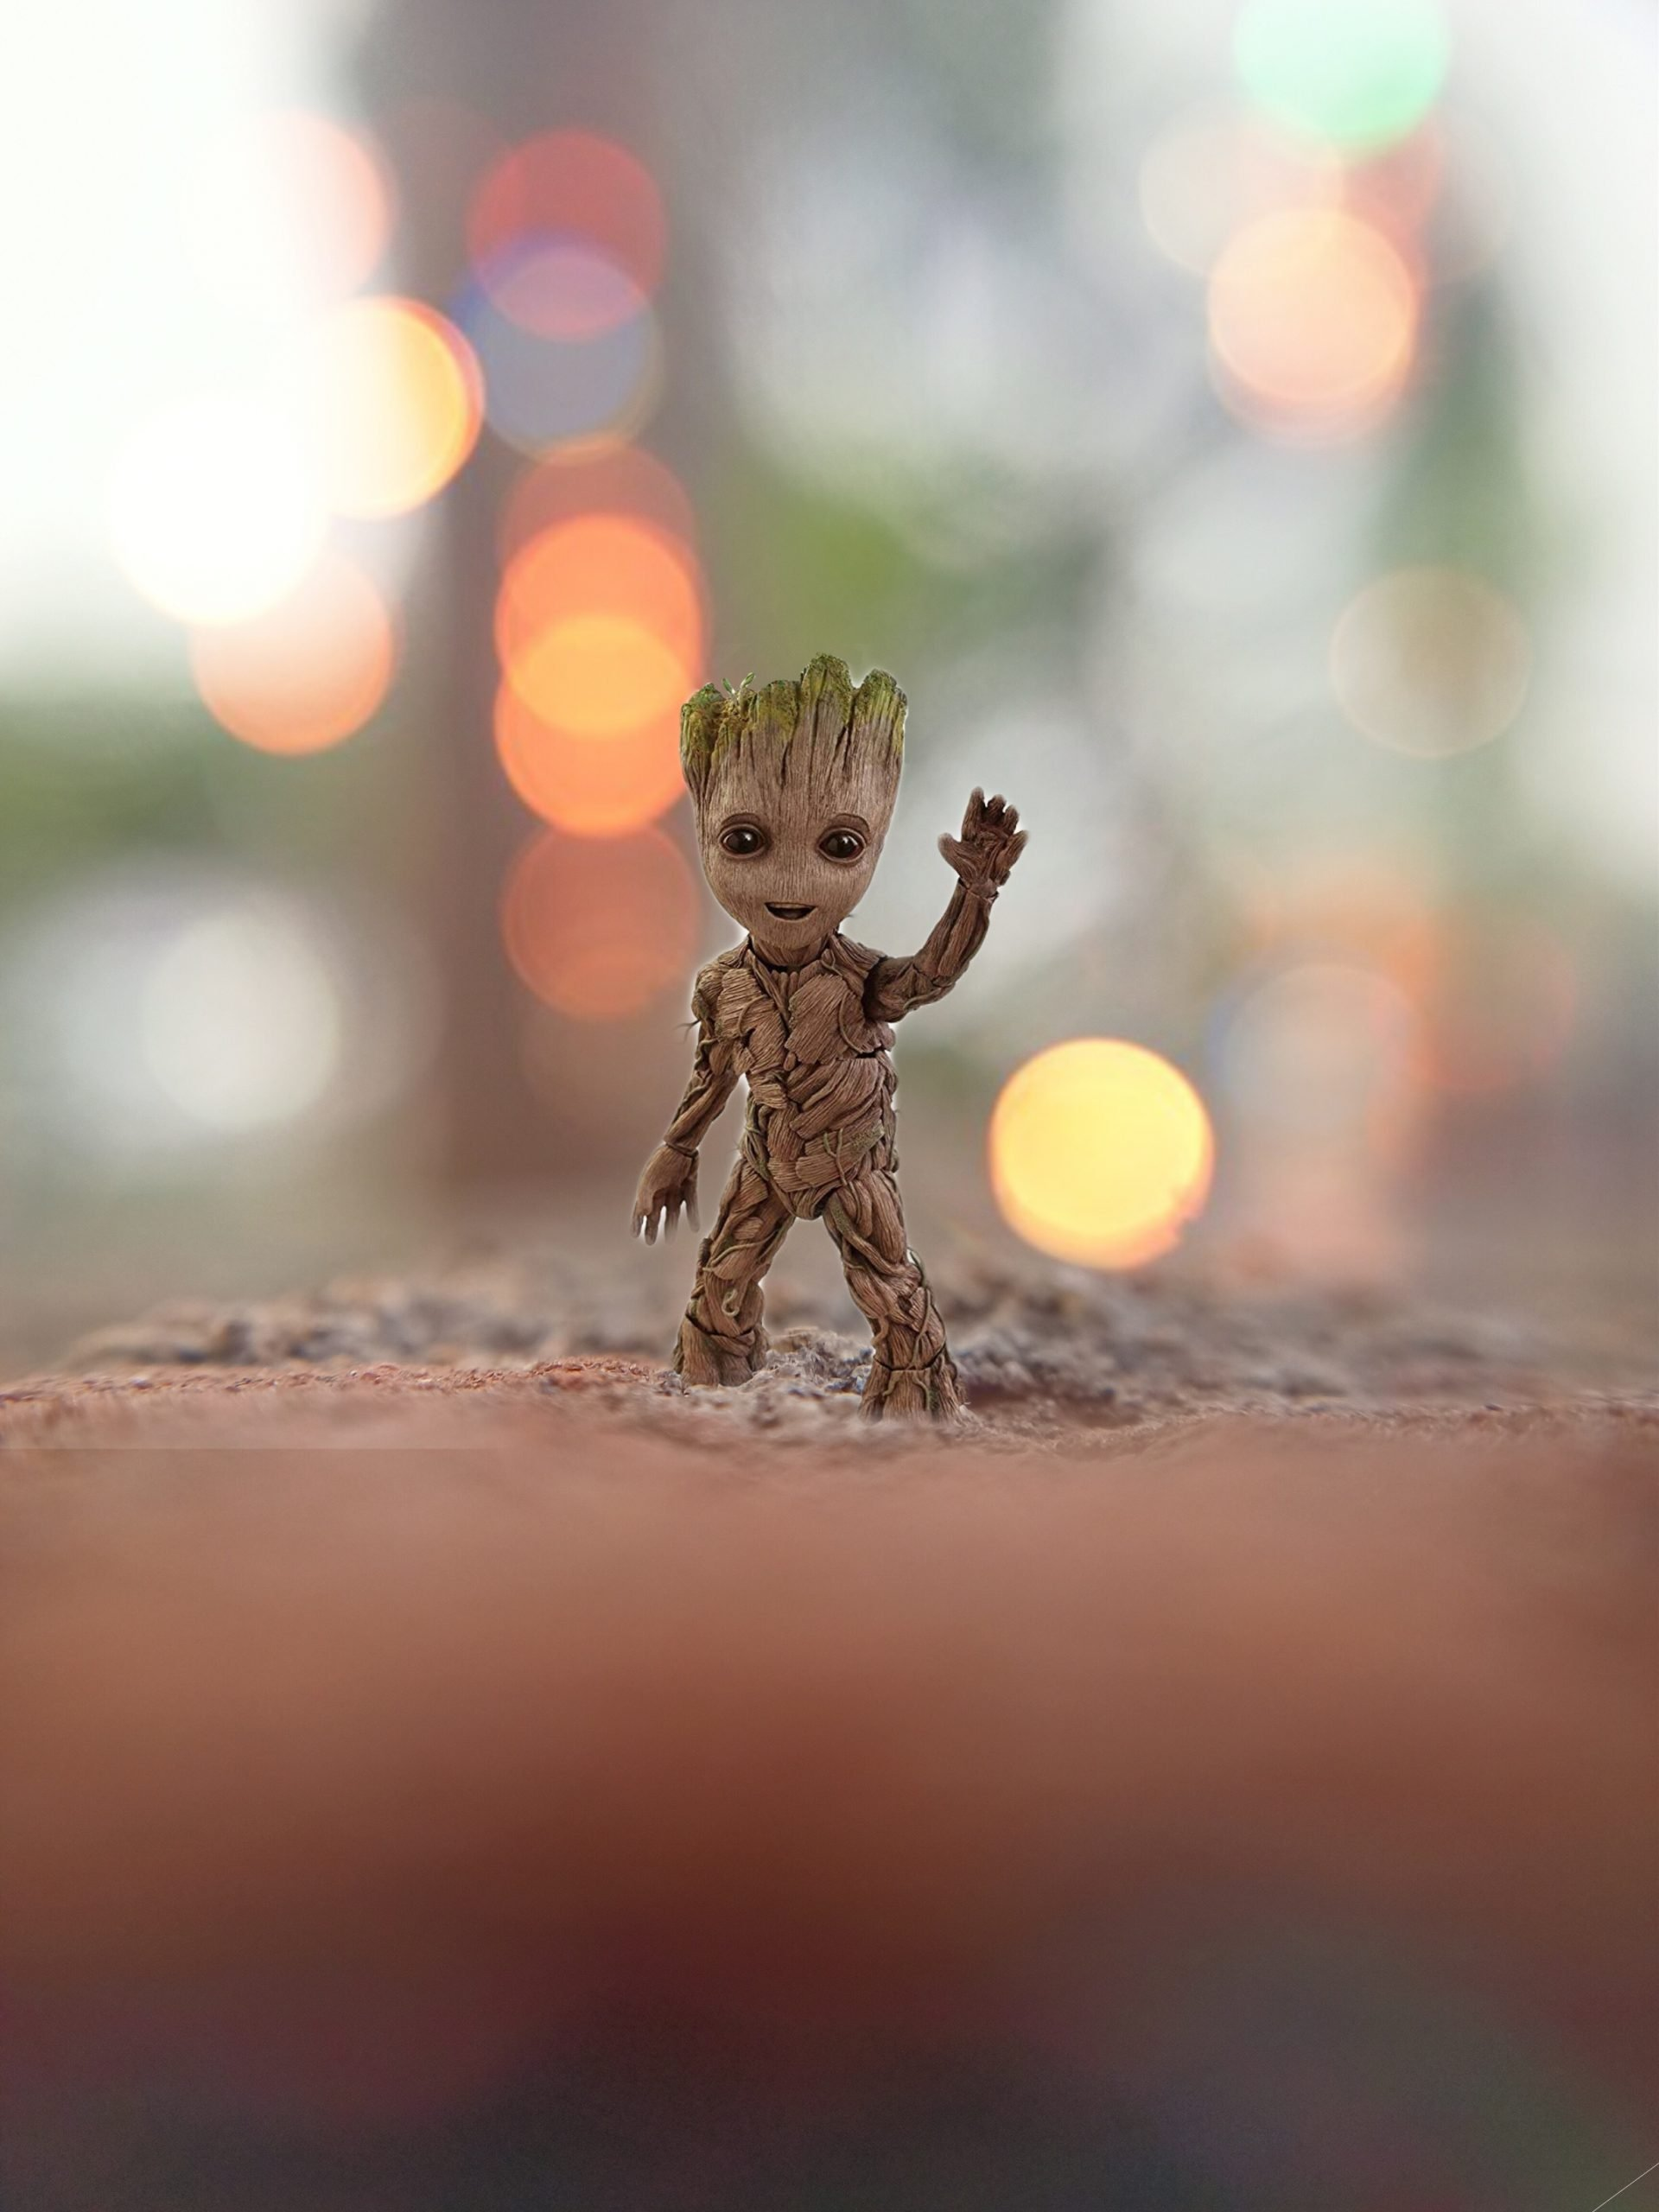 Groot animated character